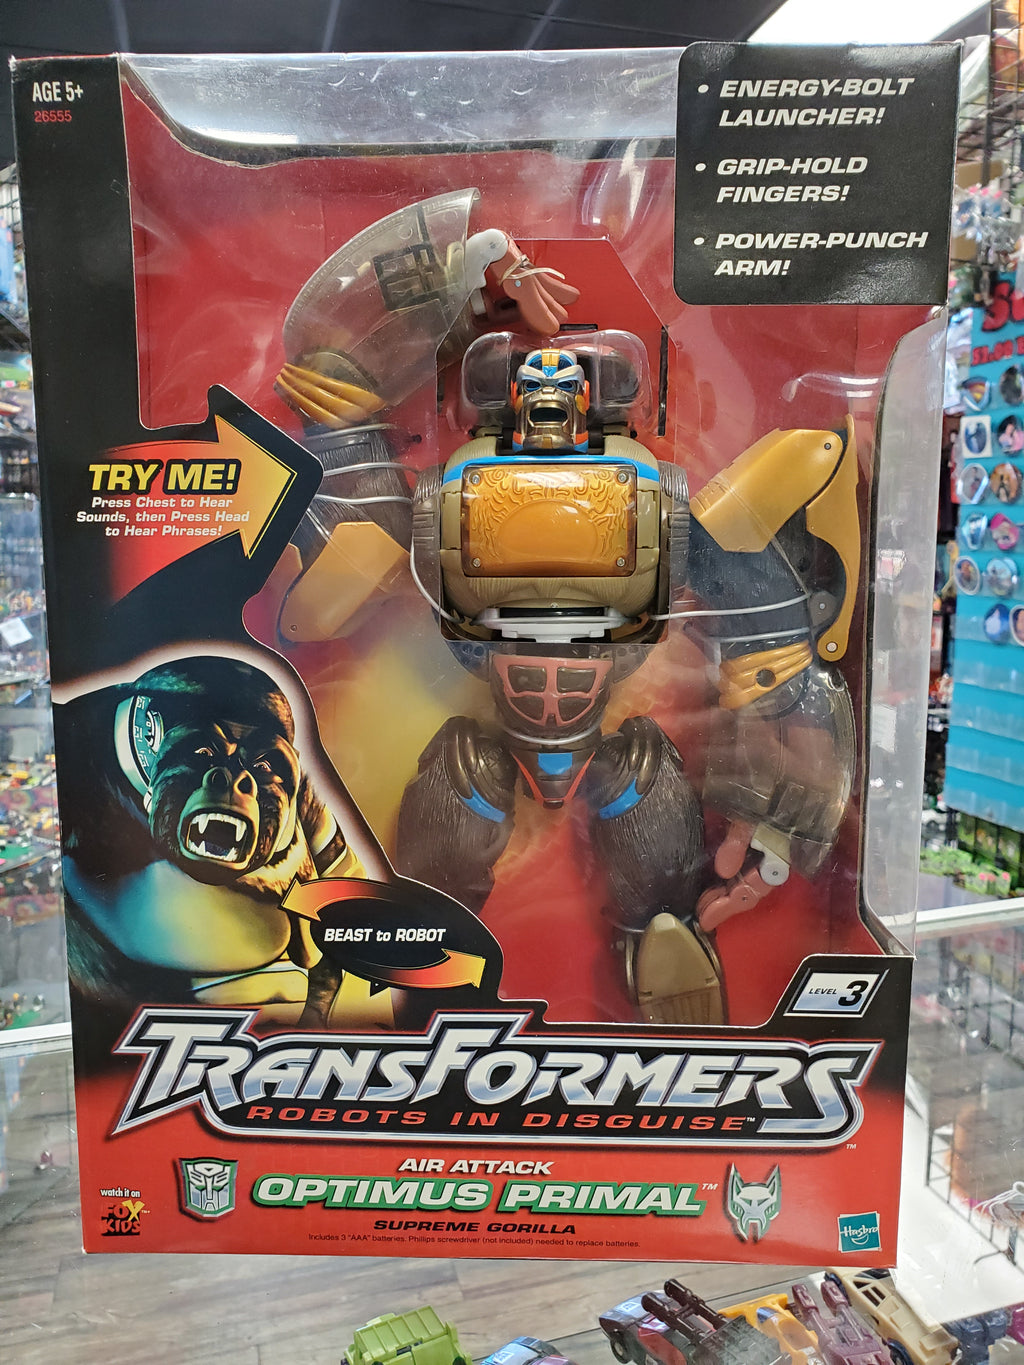 TRANSFORMERS ROBOTS IN DISGUISE OPTIMUS PRIMAL